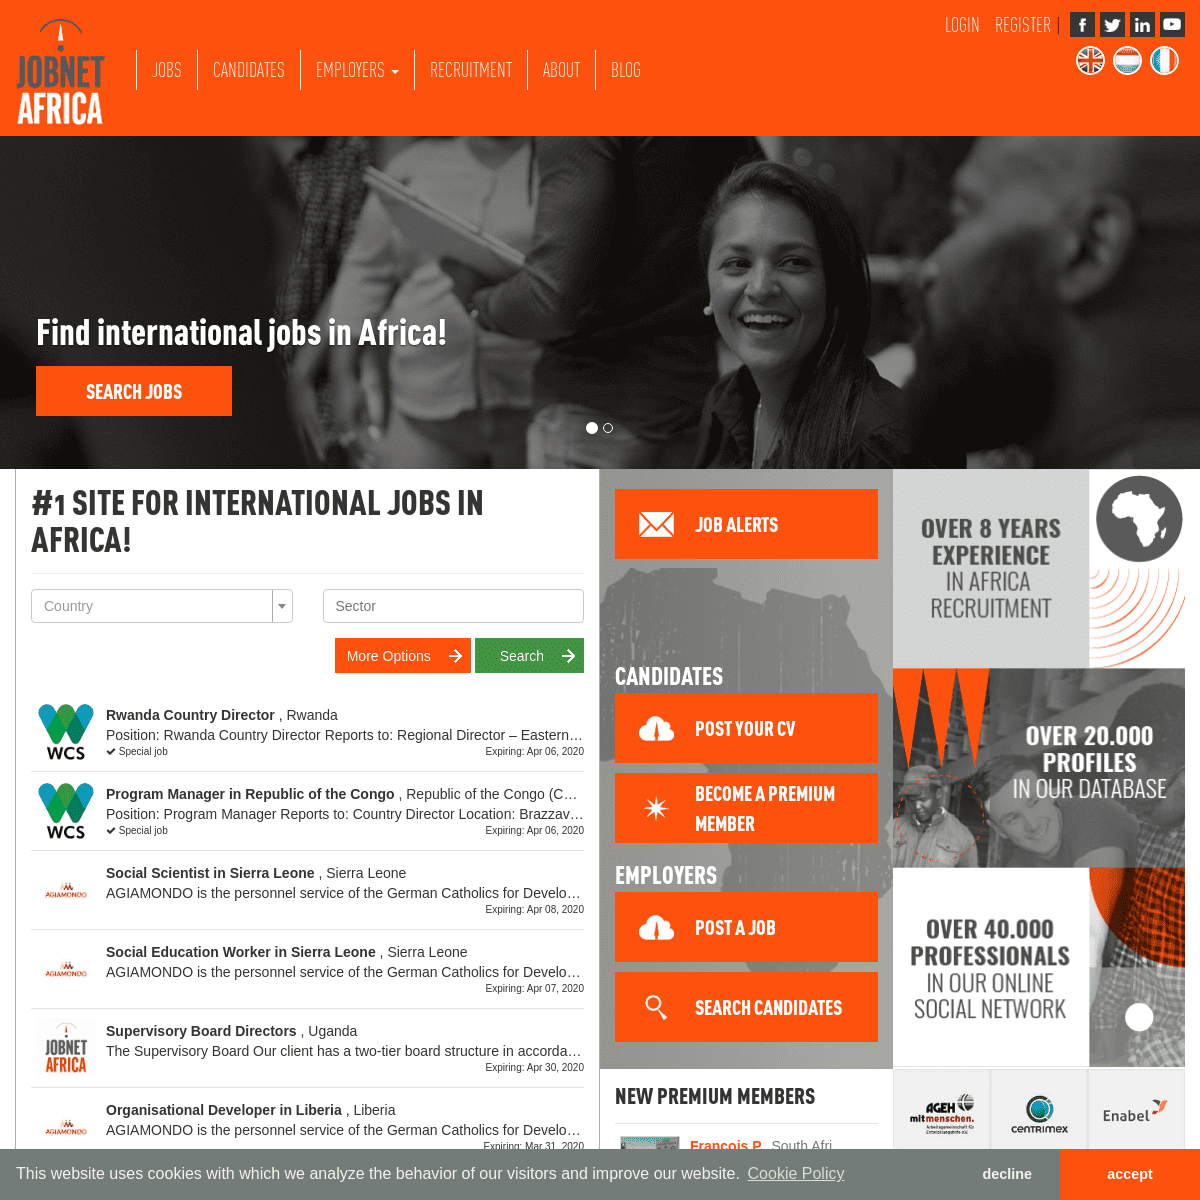 Find international jobs in Africa - JobnetAfrica